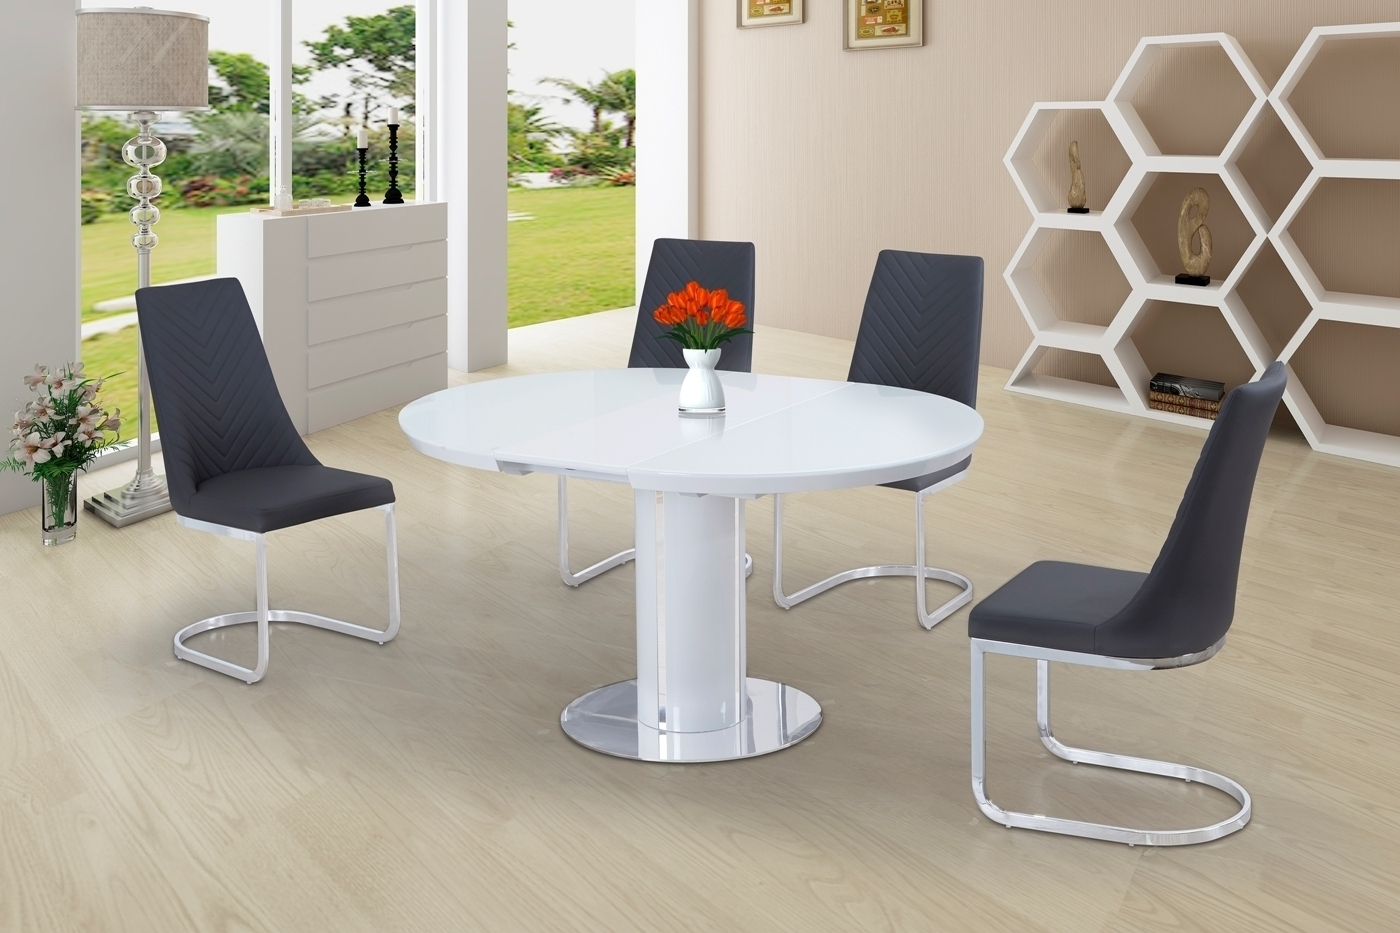 2018 White High Gloss Dining Tables 6 Chairs Throughout Round White Glass High Gloss Dining Table And 6 Grey Chairs (View 2 of 25)